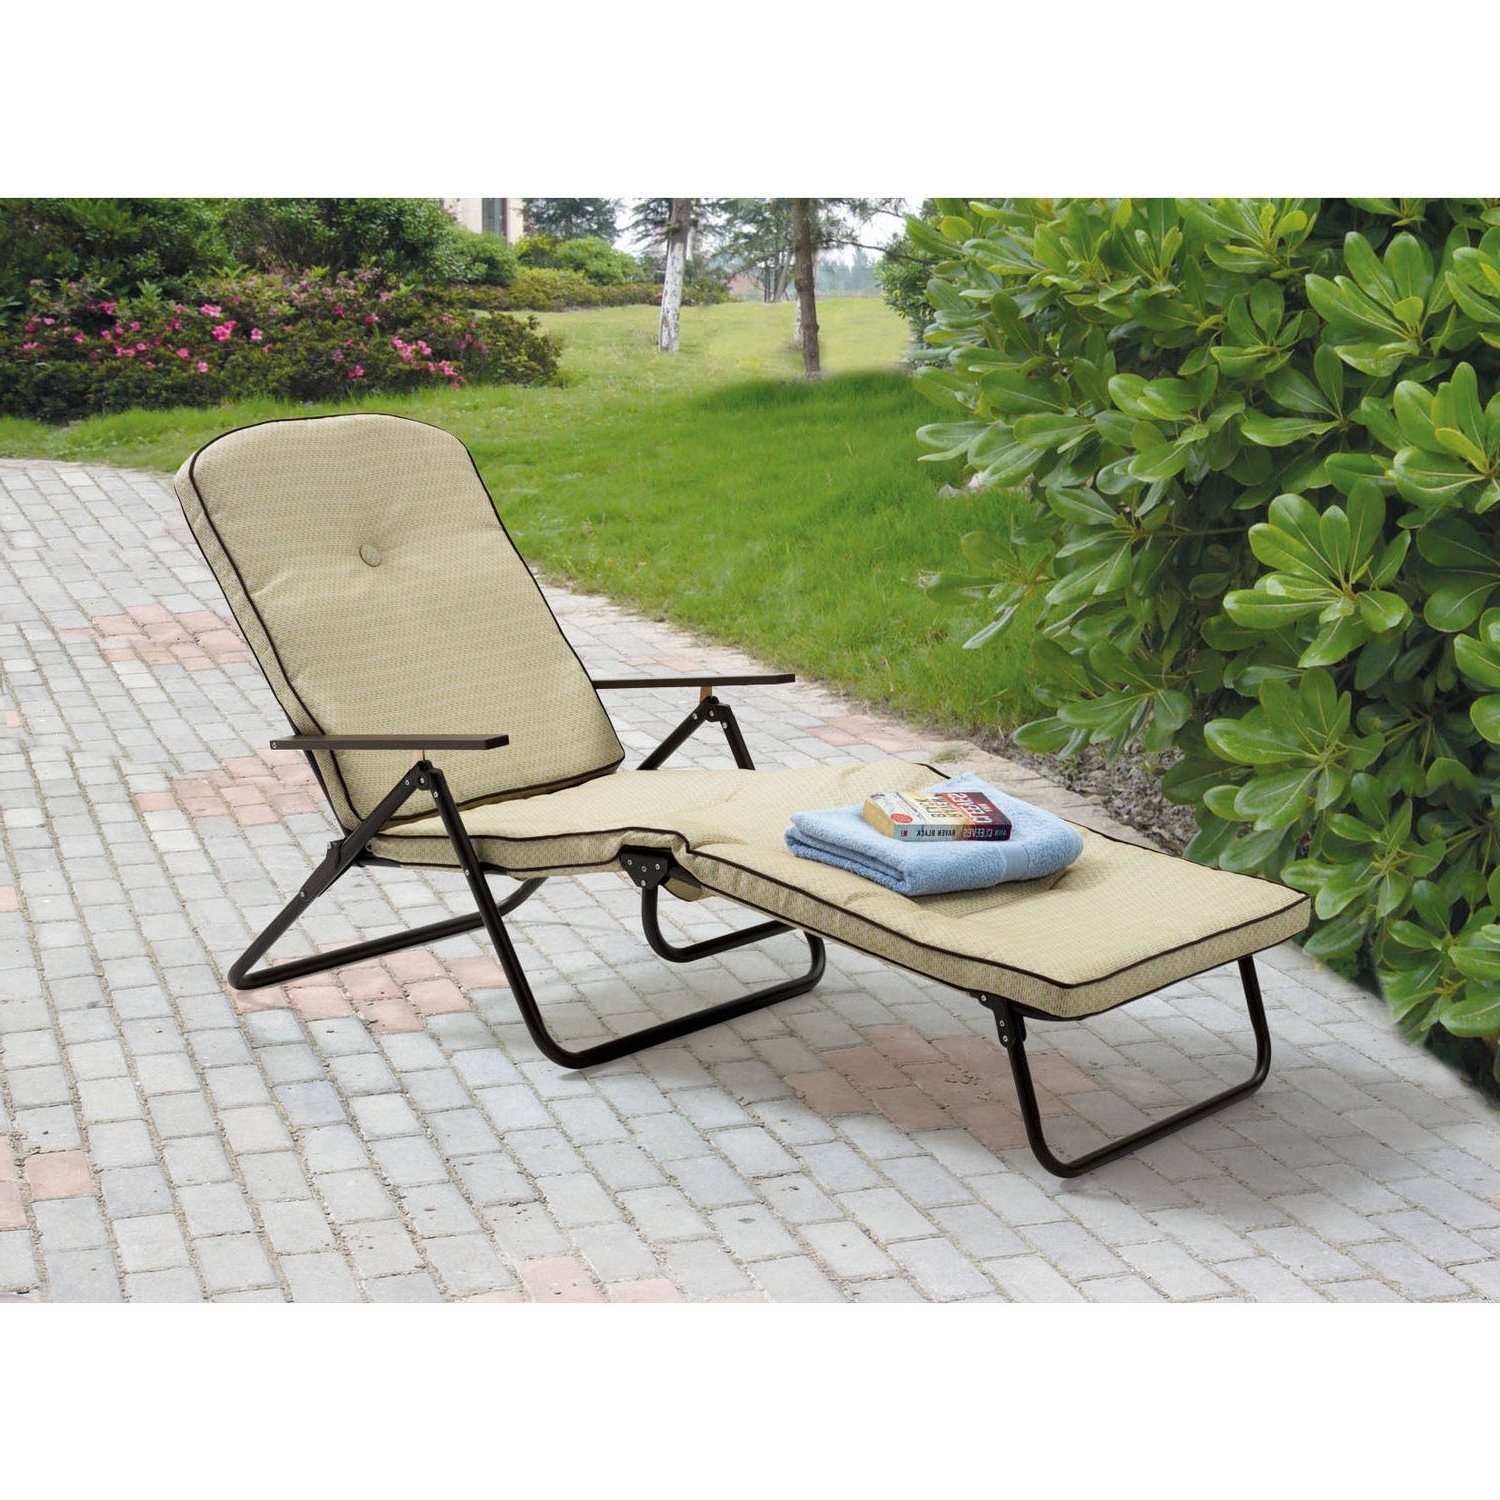 Trendy Mainstays Sand Dune Outdoor Padded Folding Chaise Lounge, Tan Intended For Chaise Lounge Folding Chairs (View 10 of 15)